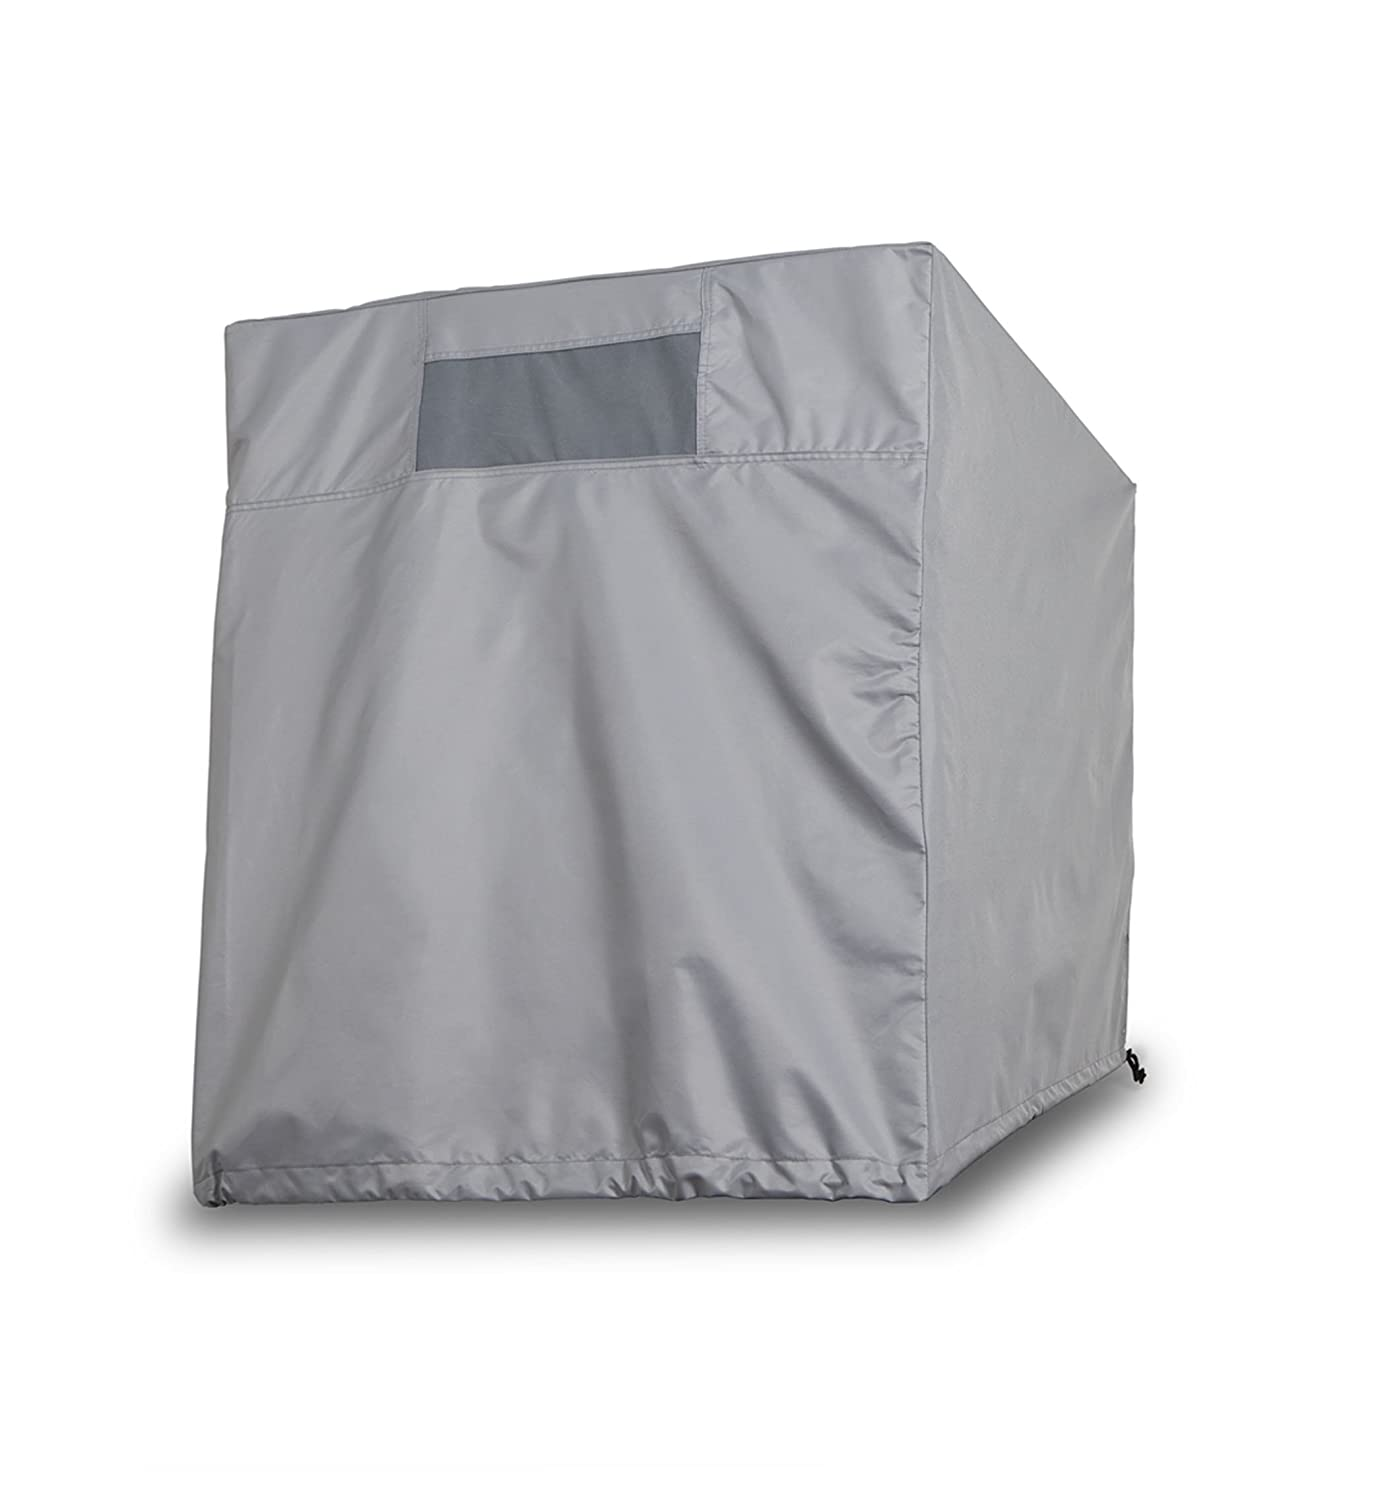 "Classic Accessories Down Draft Evaporation Cooler Cover, 42"" W x 47"" D x 28"" H"